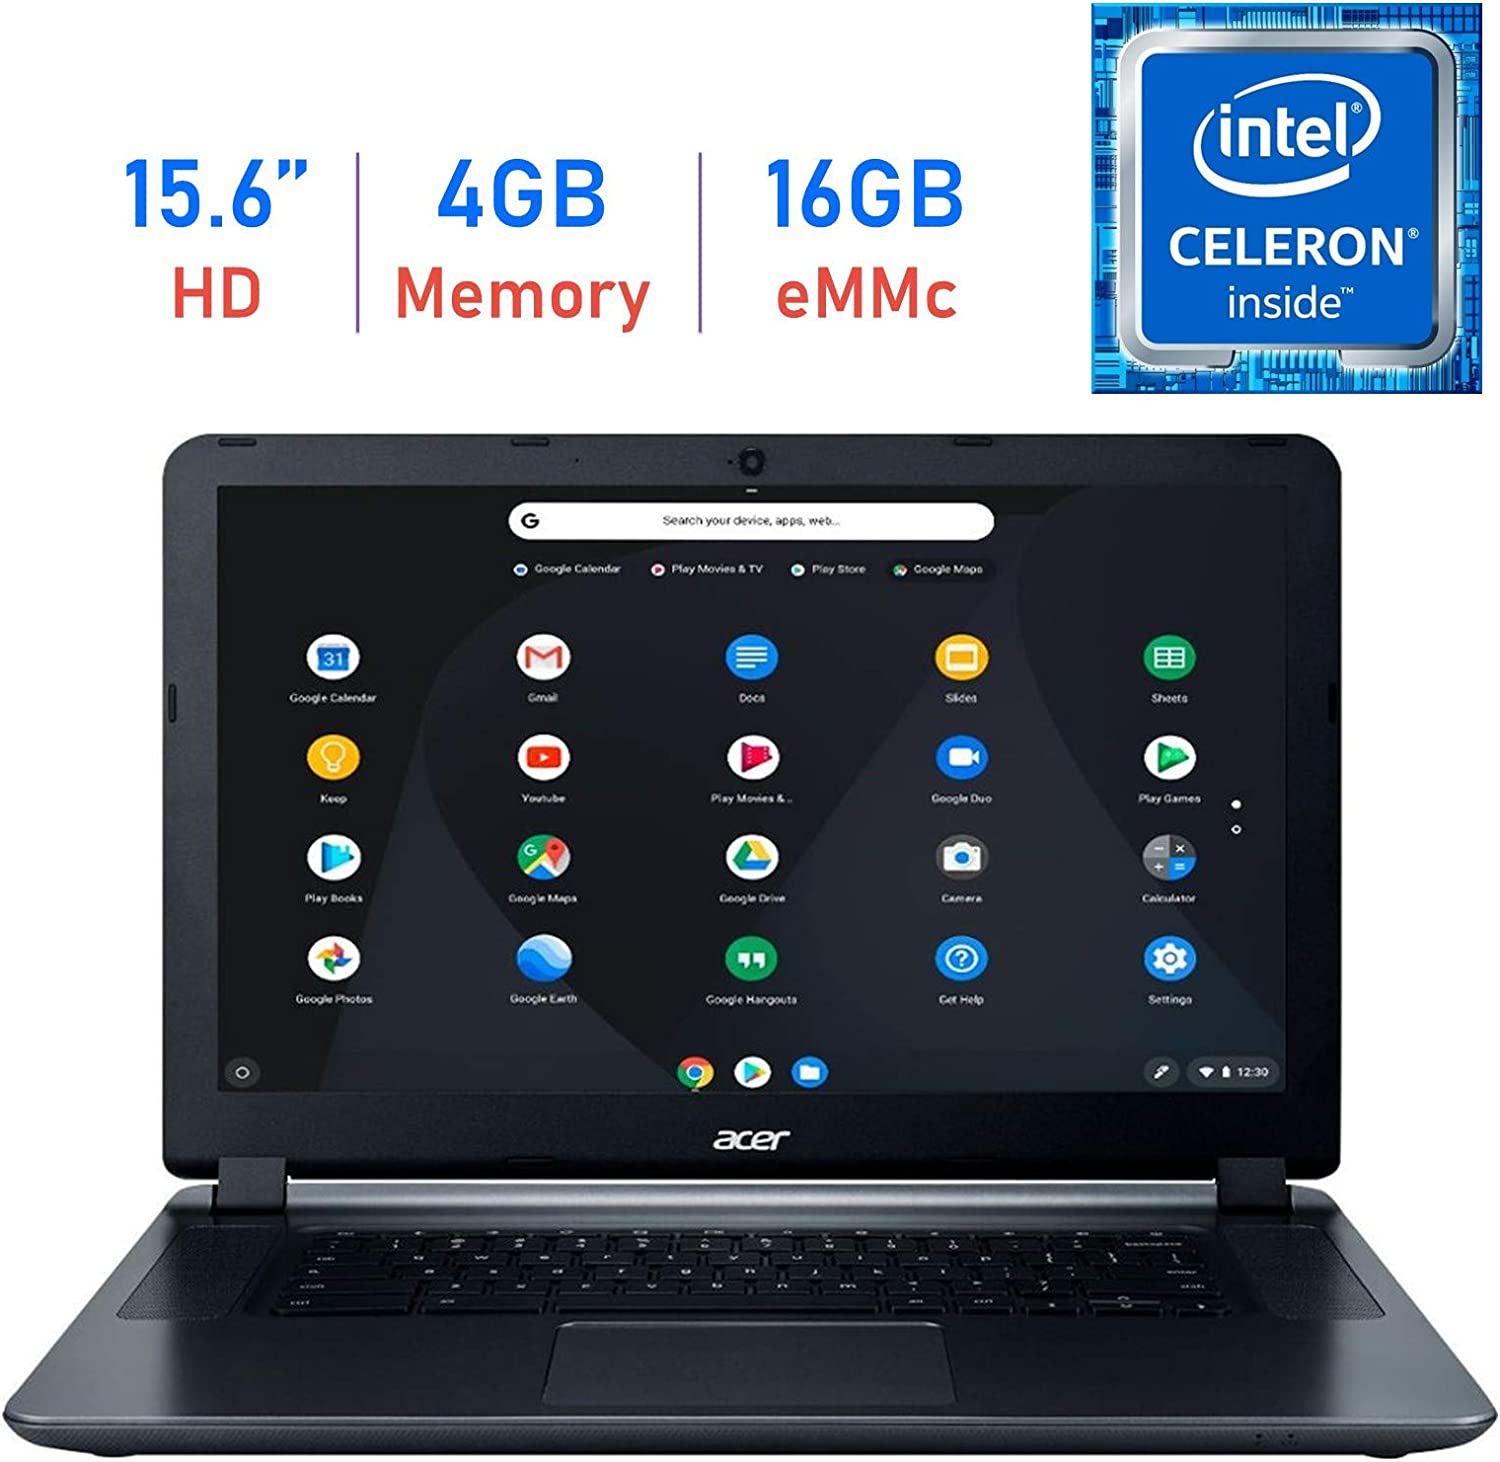 Acer Premium 15.6'' Chromebook HD ComfyView Display Laptop (Intel Dual-Core Celeron 1.6GHz, 4GB Memory, 16GB eMMC Storage, WiFi, Bluetooth, Webcam, HDMI, Up to 12 hrs Battery, USB 3.0, Chrome OS)